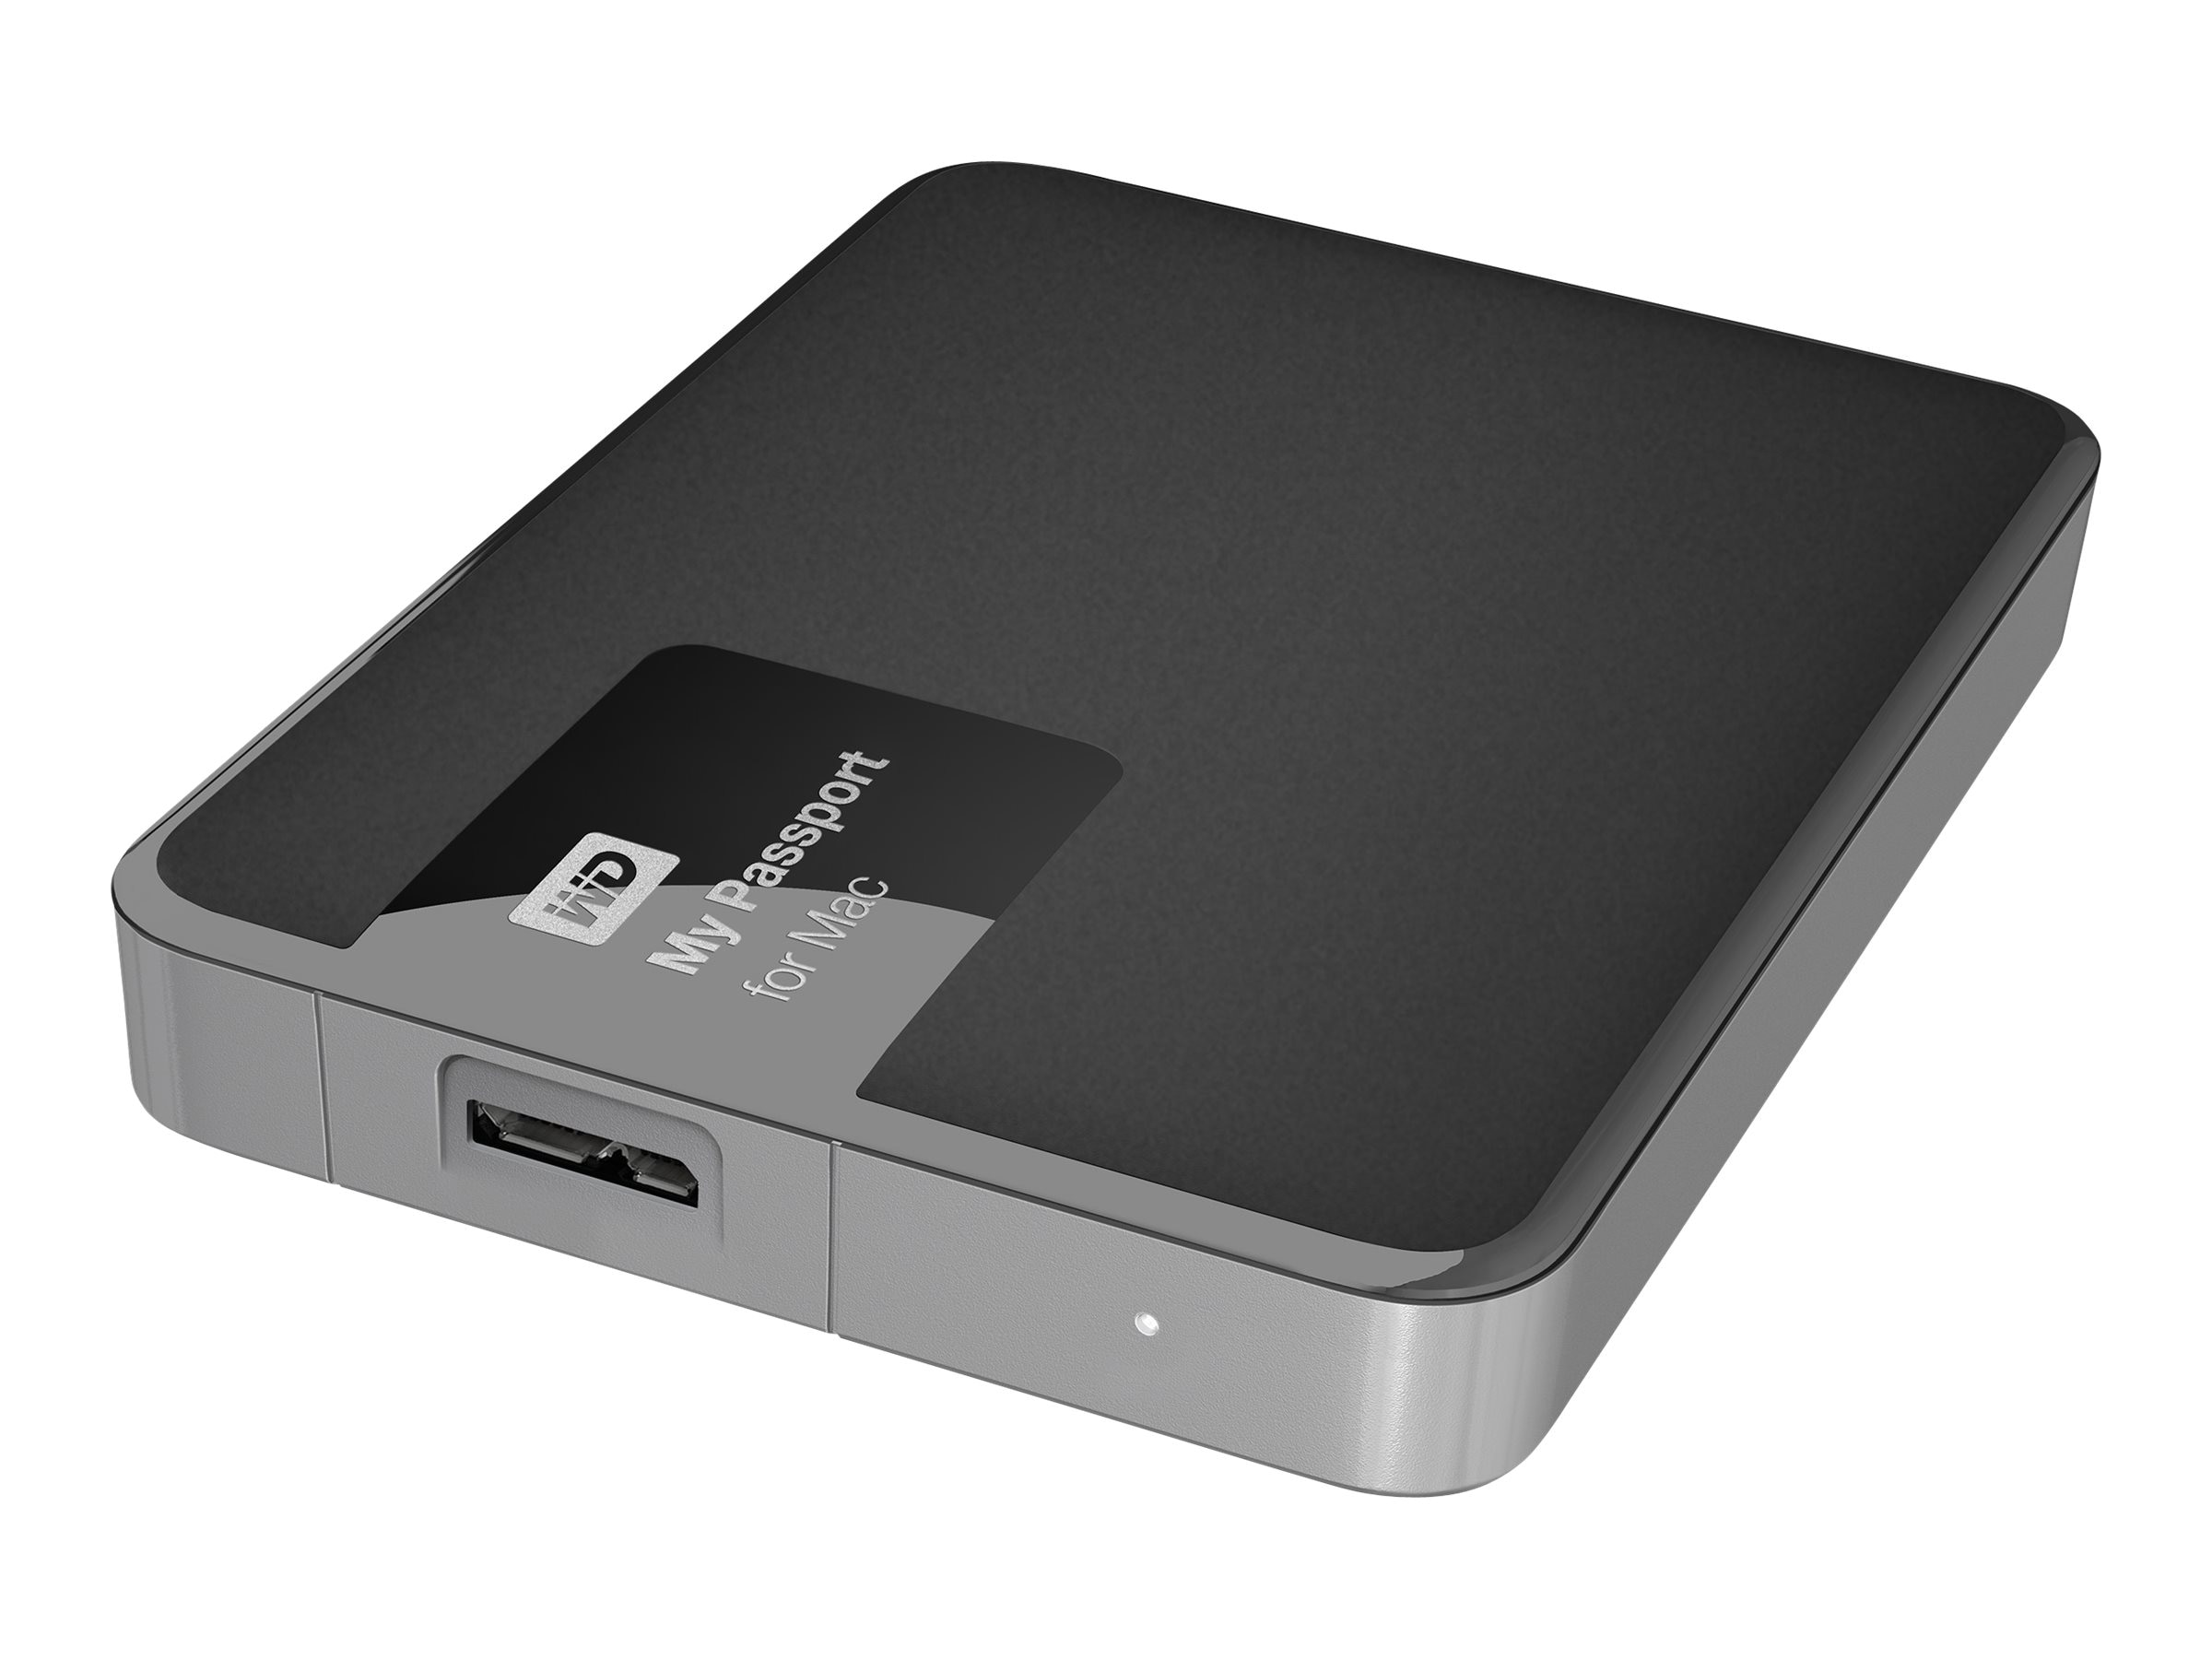 WD 2TB My Passport for Mac USB 3.0 Portable Hard Drive, WDBCGL0020BSL-NESN, 22158984, Hard Drives - External